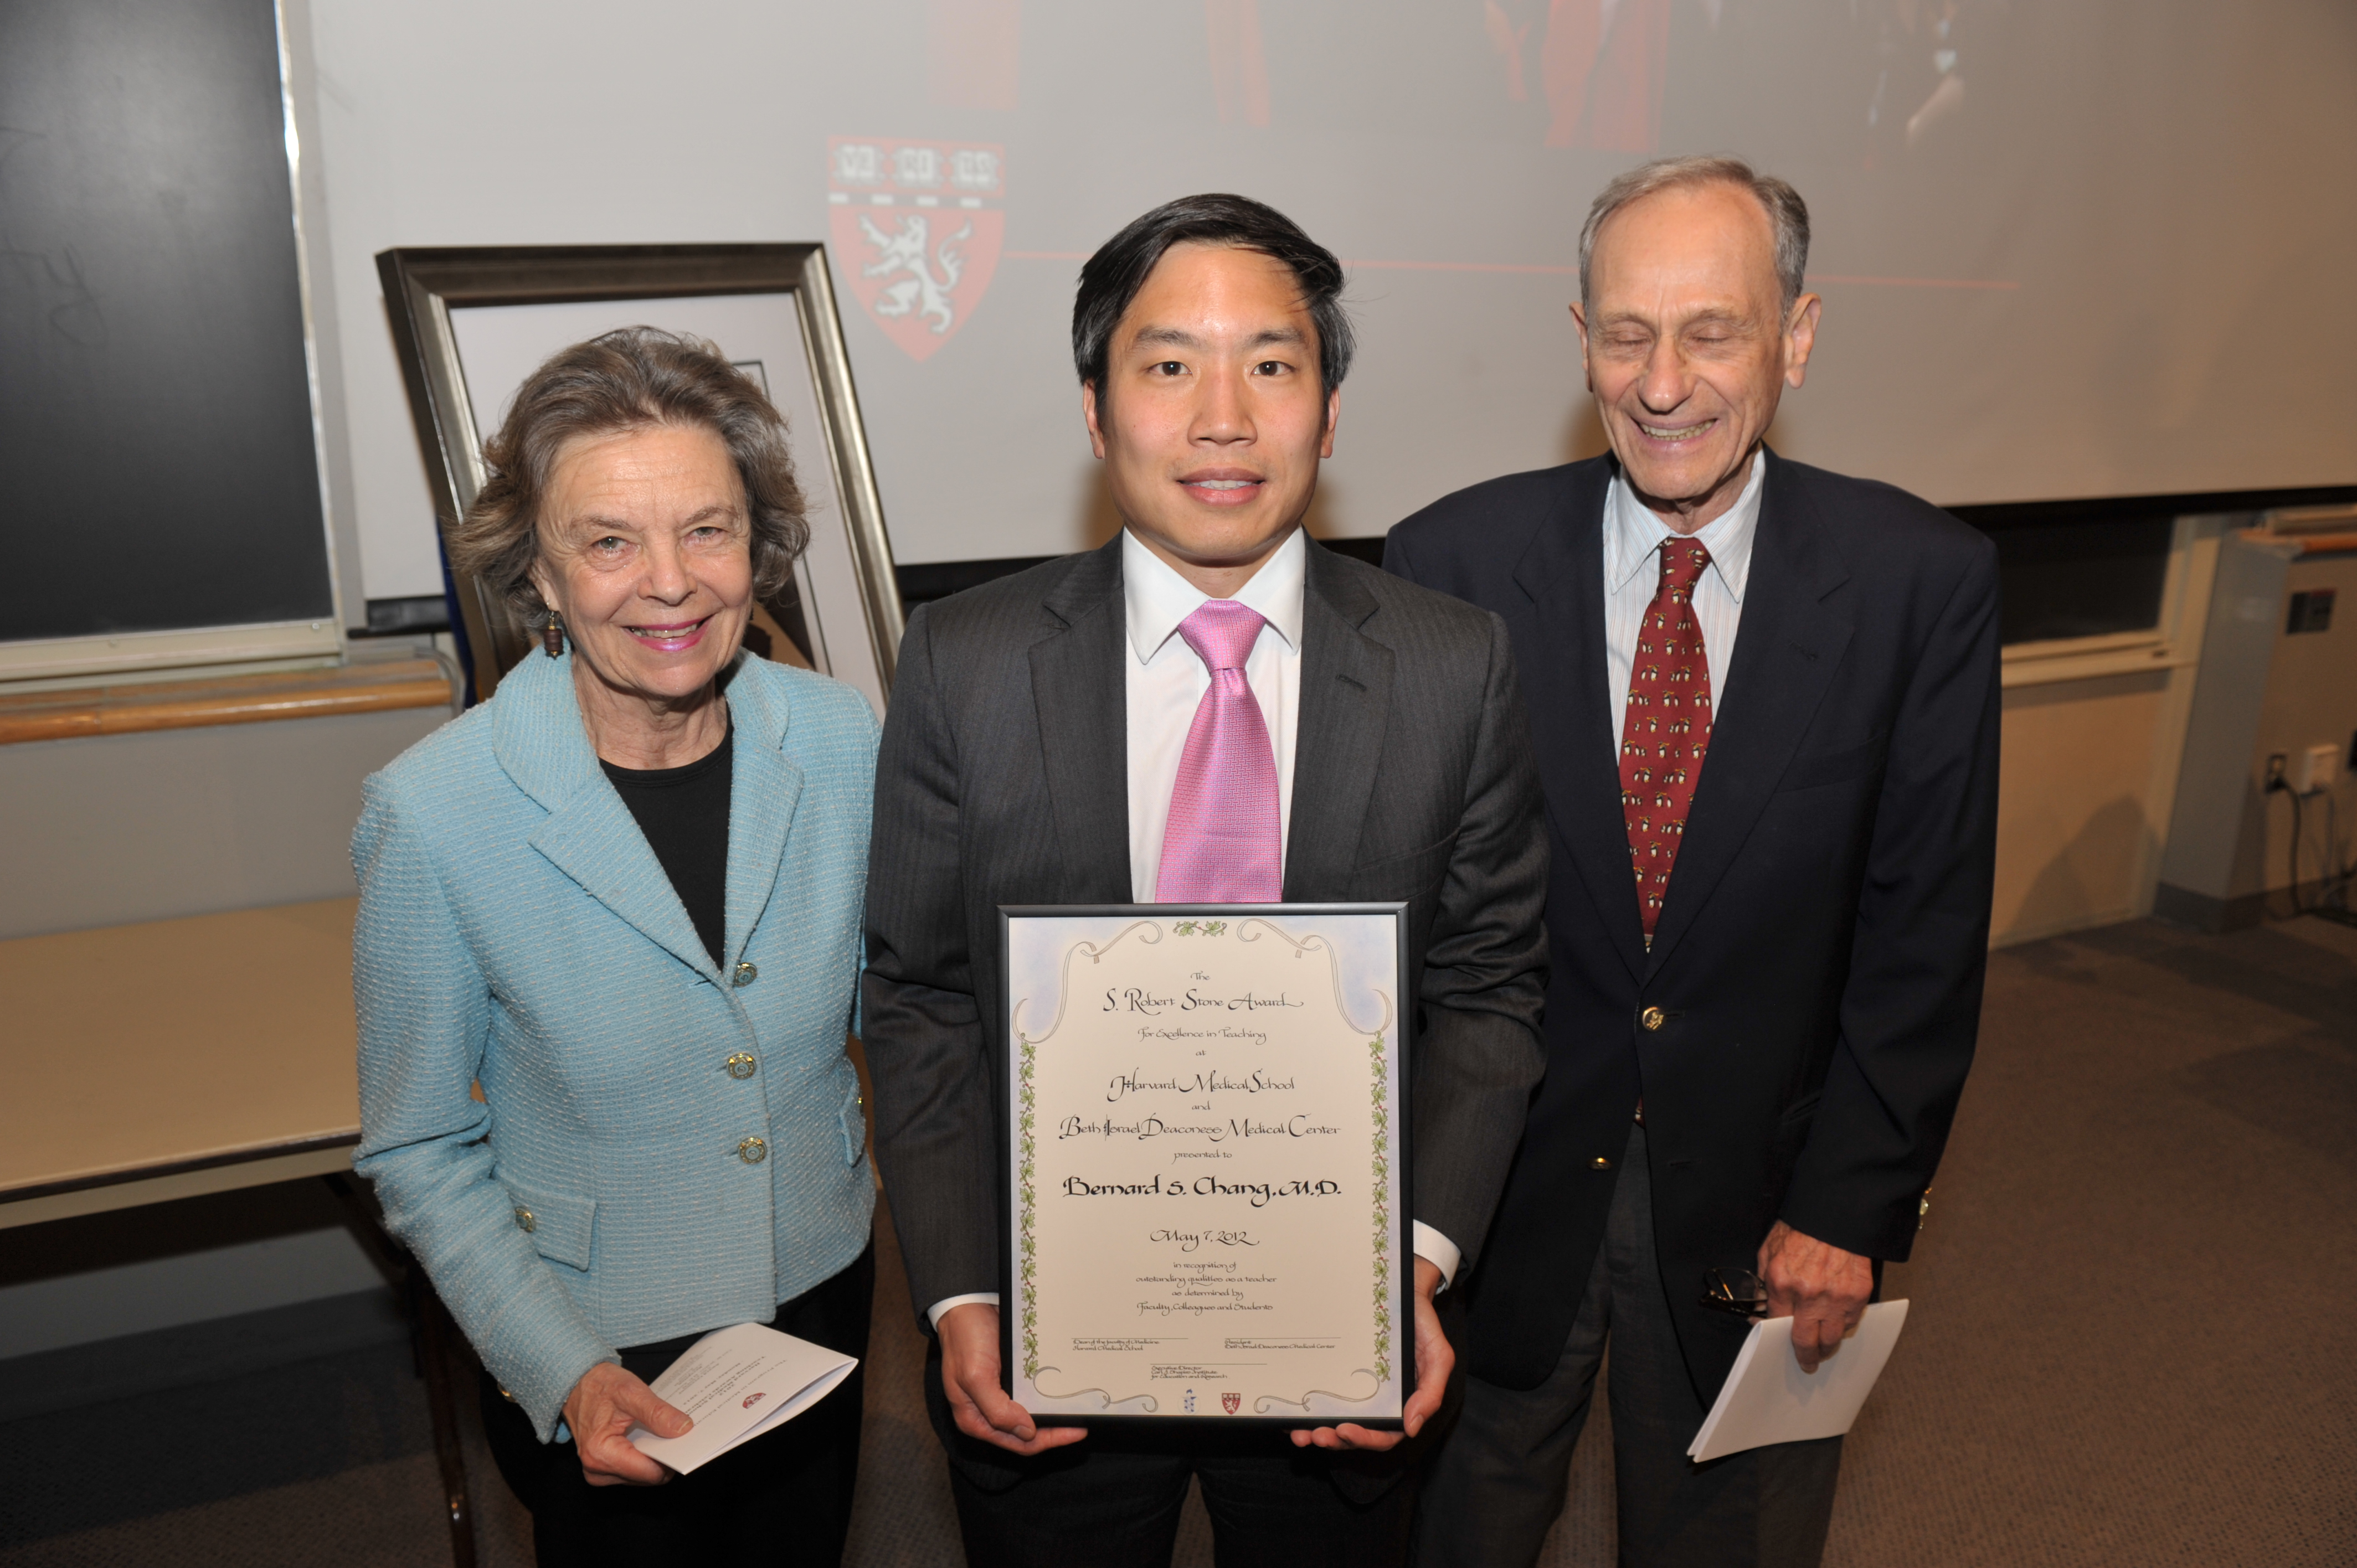 Bernard S. Chang, MD, Recipient of the S. Robert Stone Award for Excellence in Teaching, with Dick and Betty Stone. Photo by Steve Gilbert.